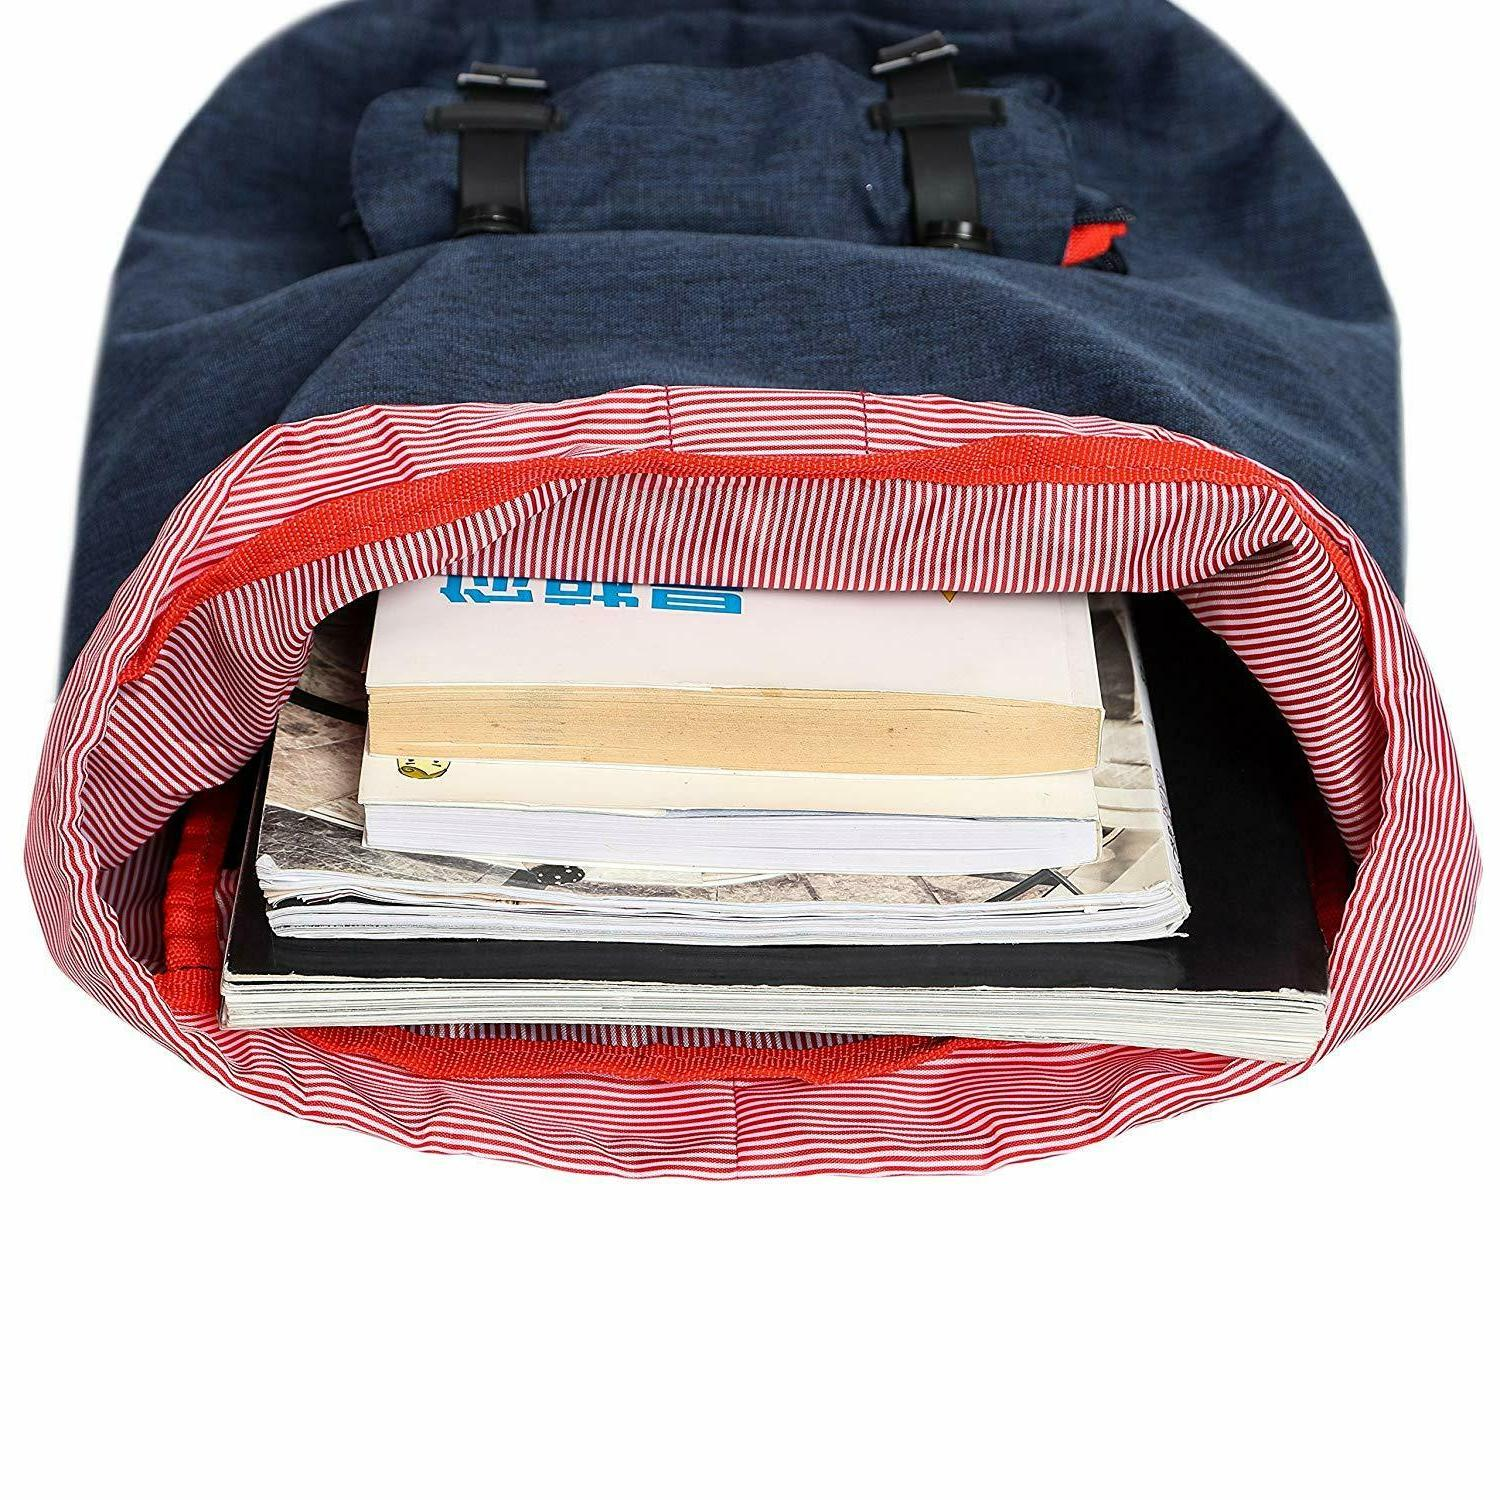 NAVY Collapsible Folding Travel